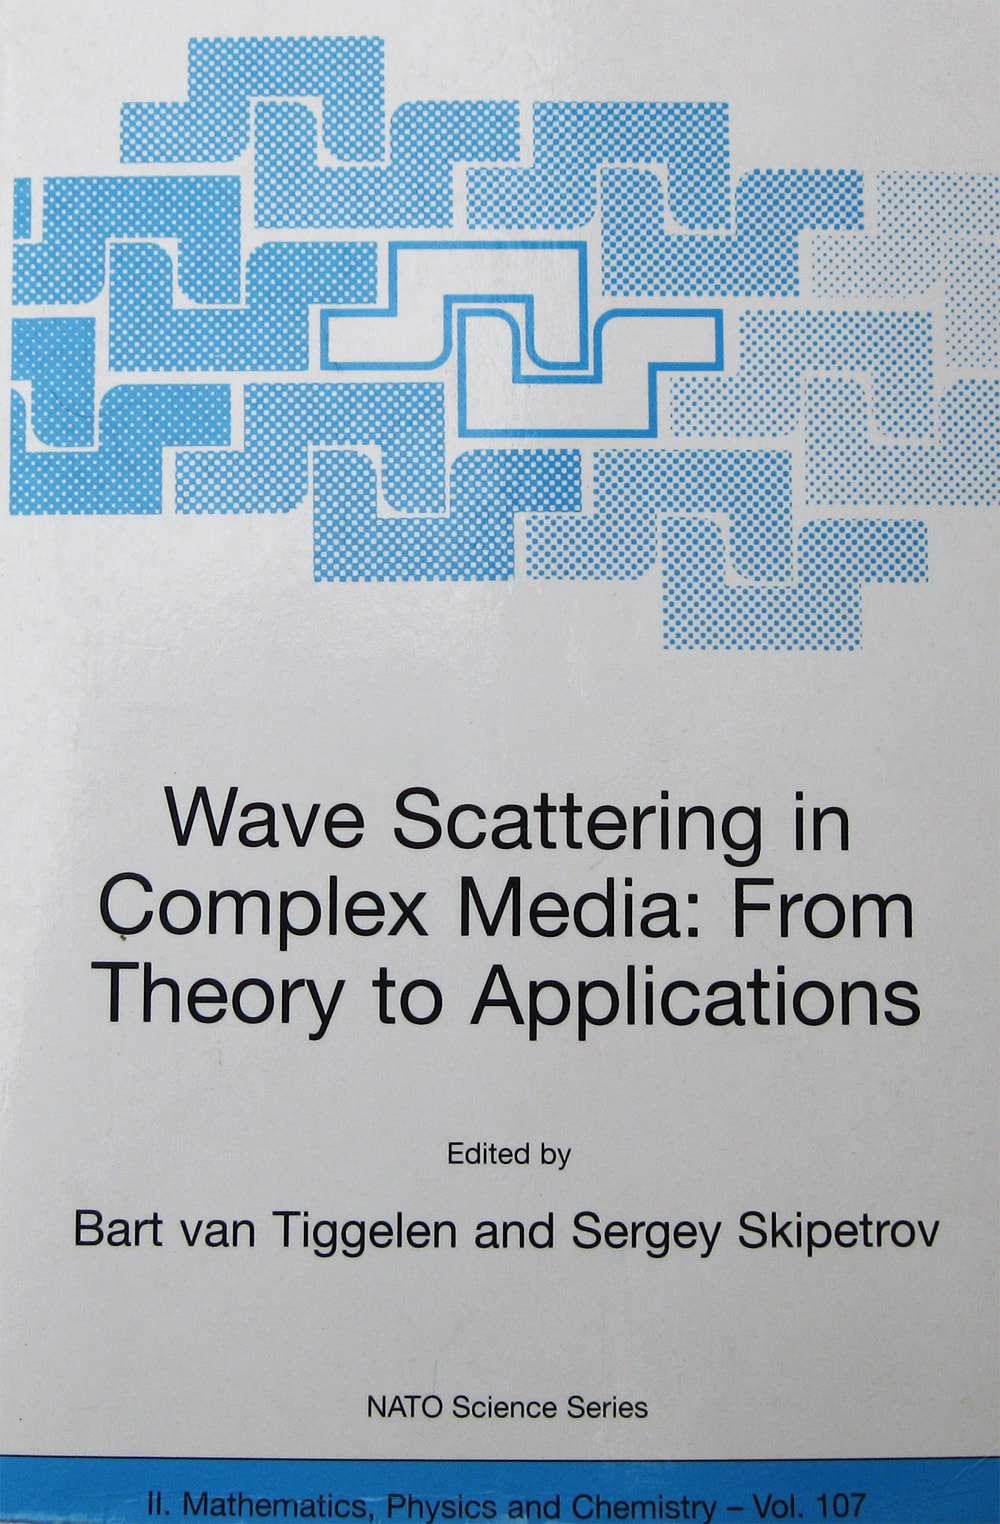 Wave Scattering in Complex Media: From Theory to Applications